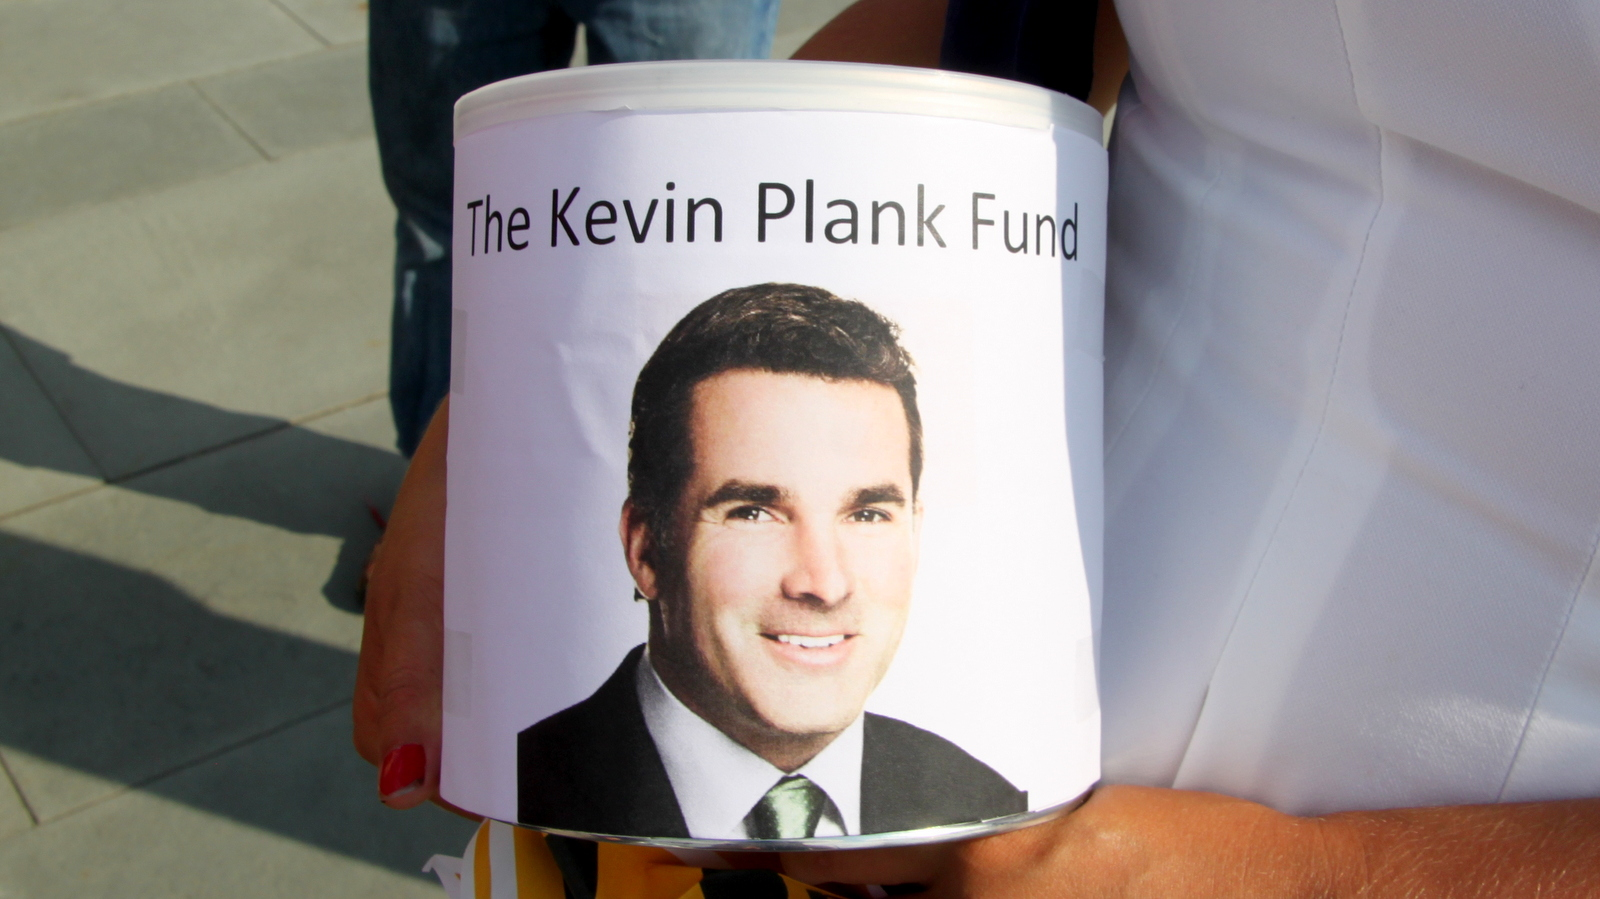 Protesters decried a massive TIF they said would benefit Under Armour CEO Kevin Plank but not most Baltimoreans. (Fern Shen)